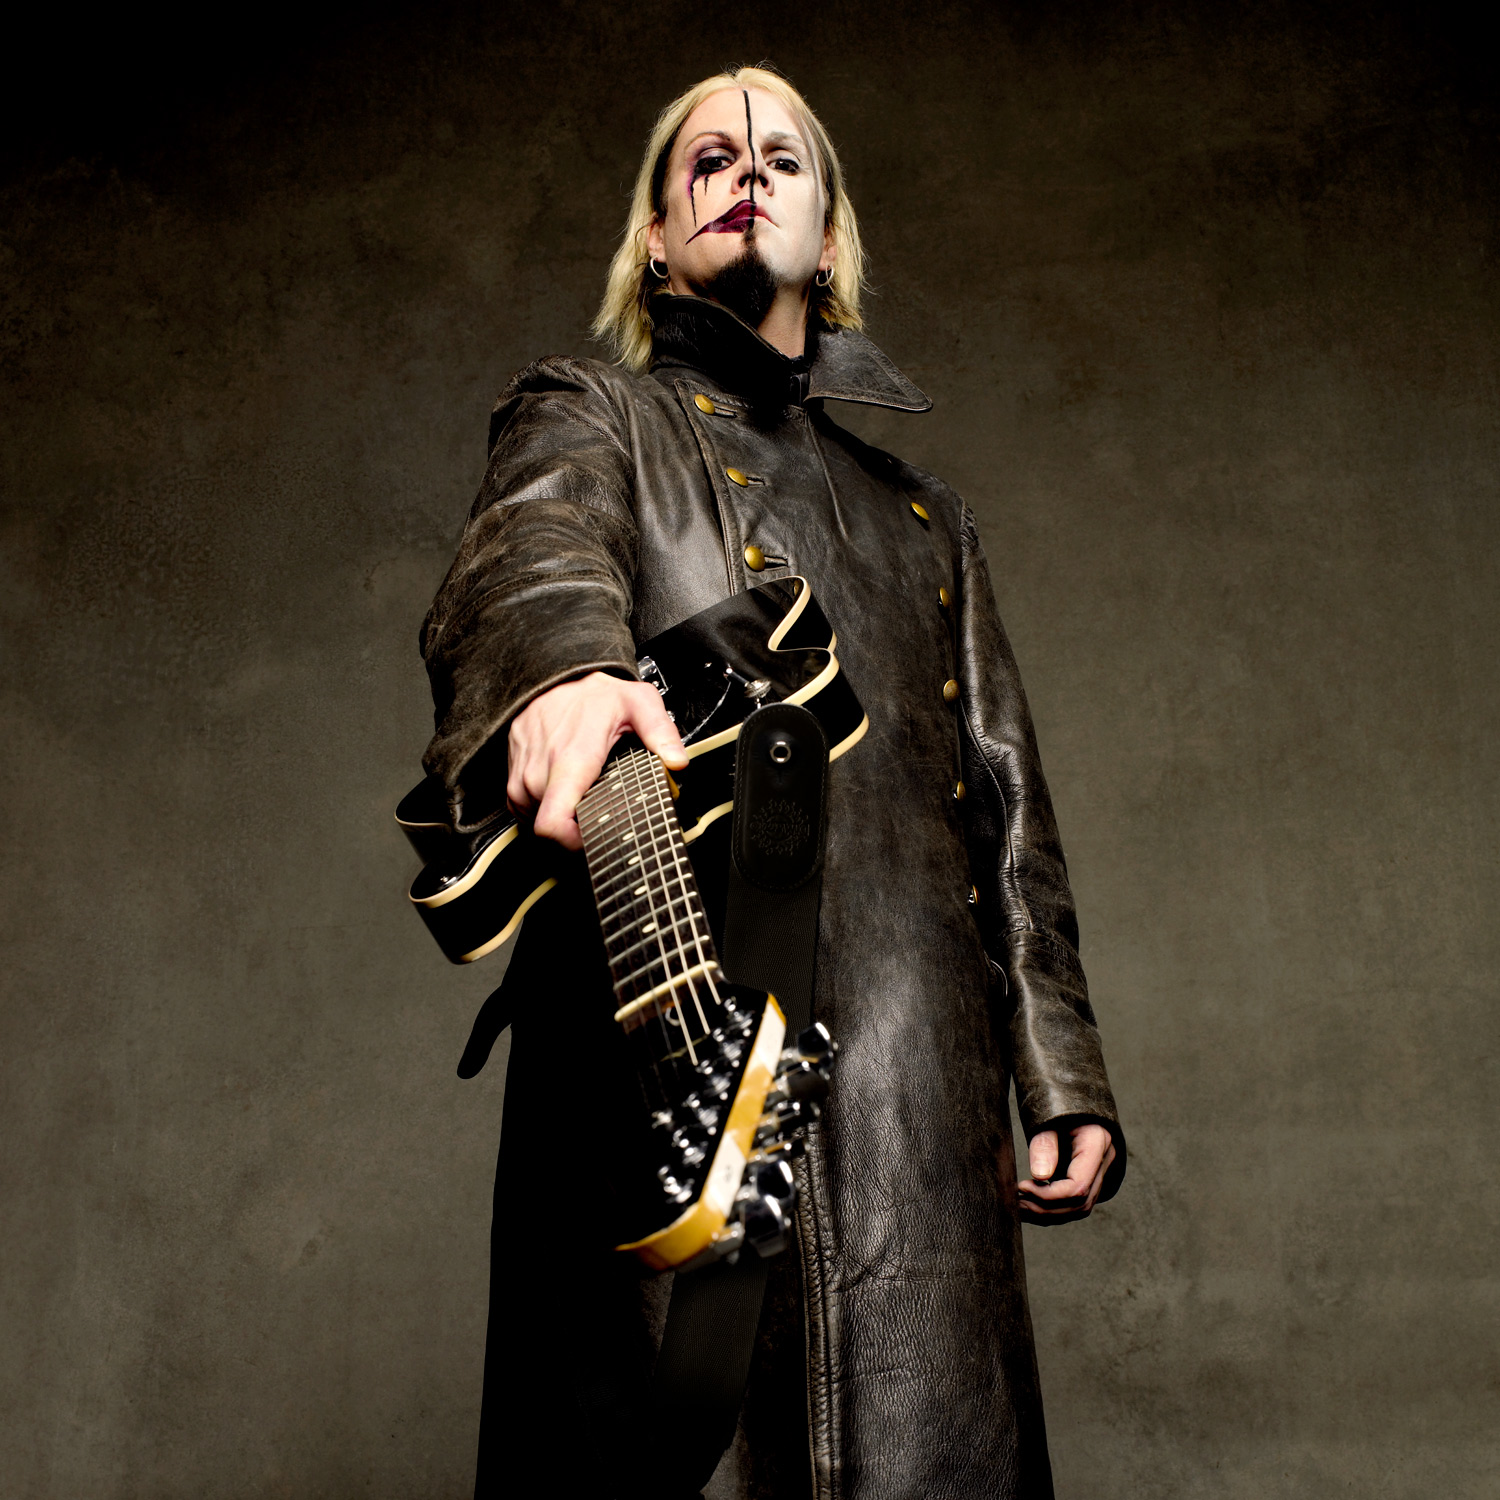 John 5 photo by Larry DiMarzio